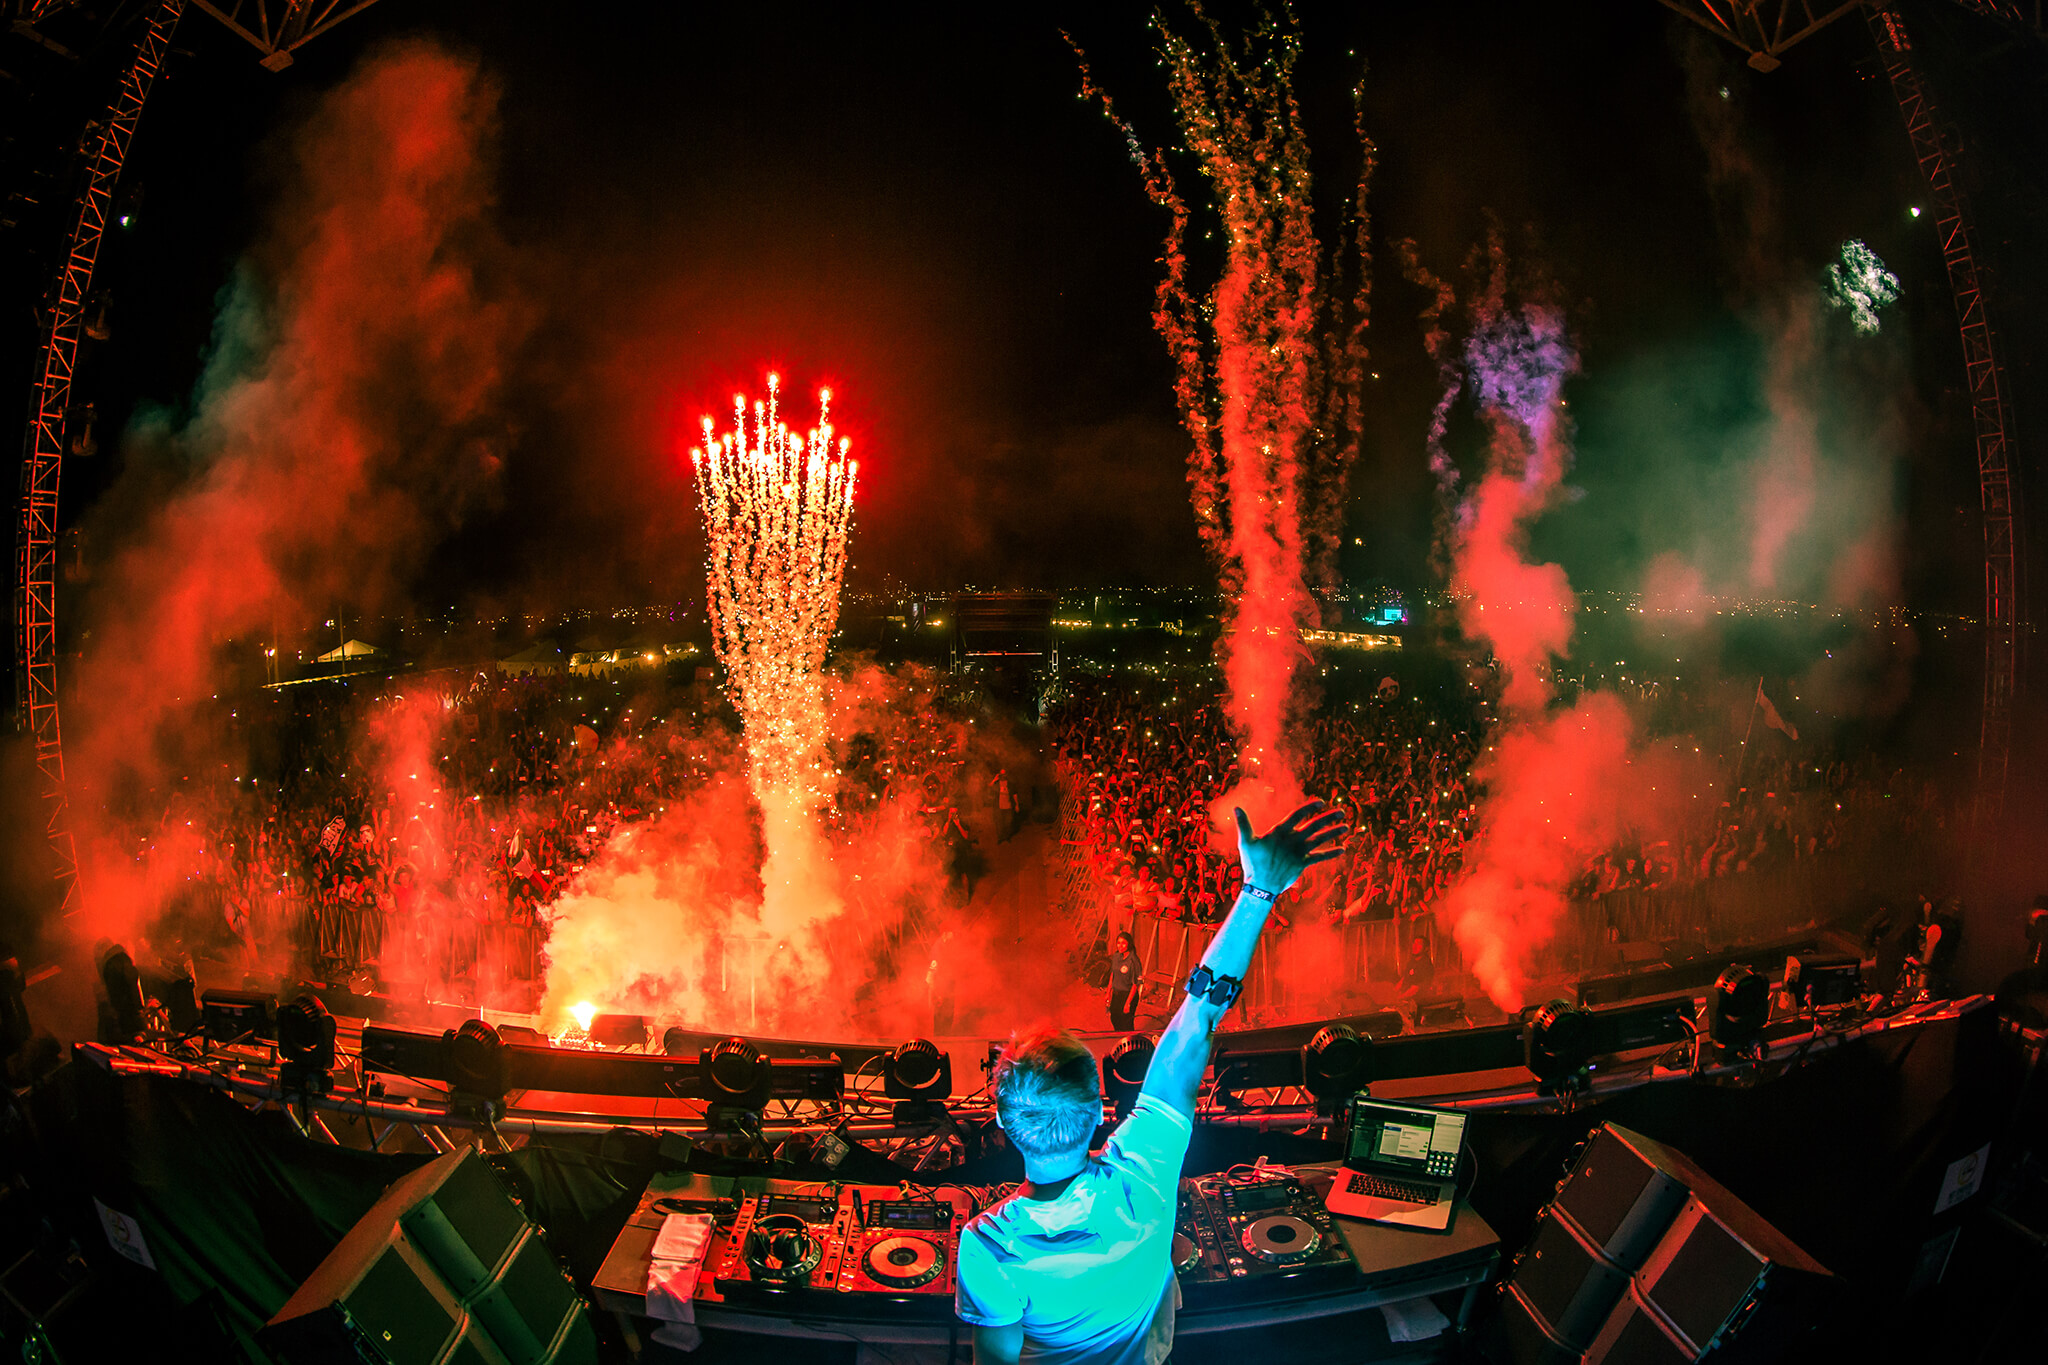 dash berlin performing at sun city music festival